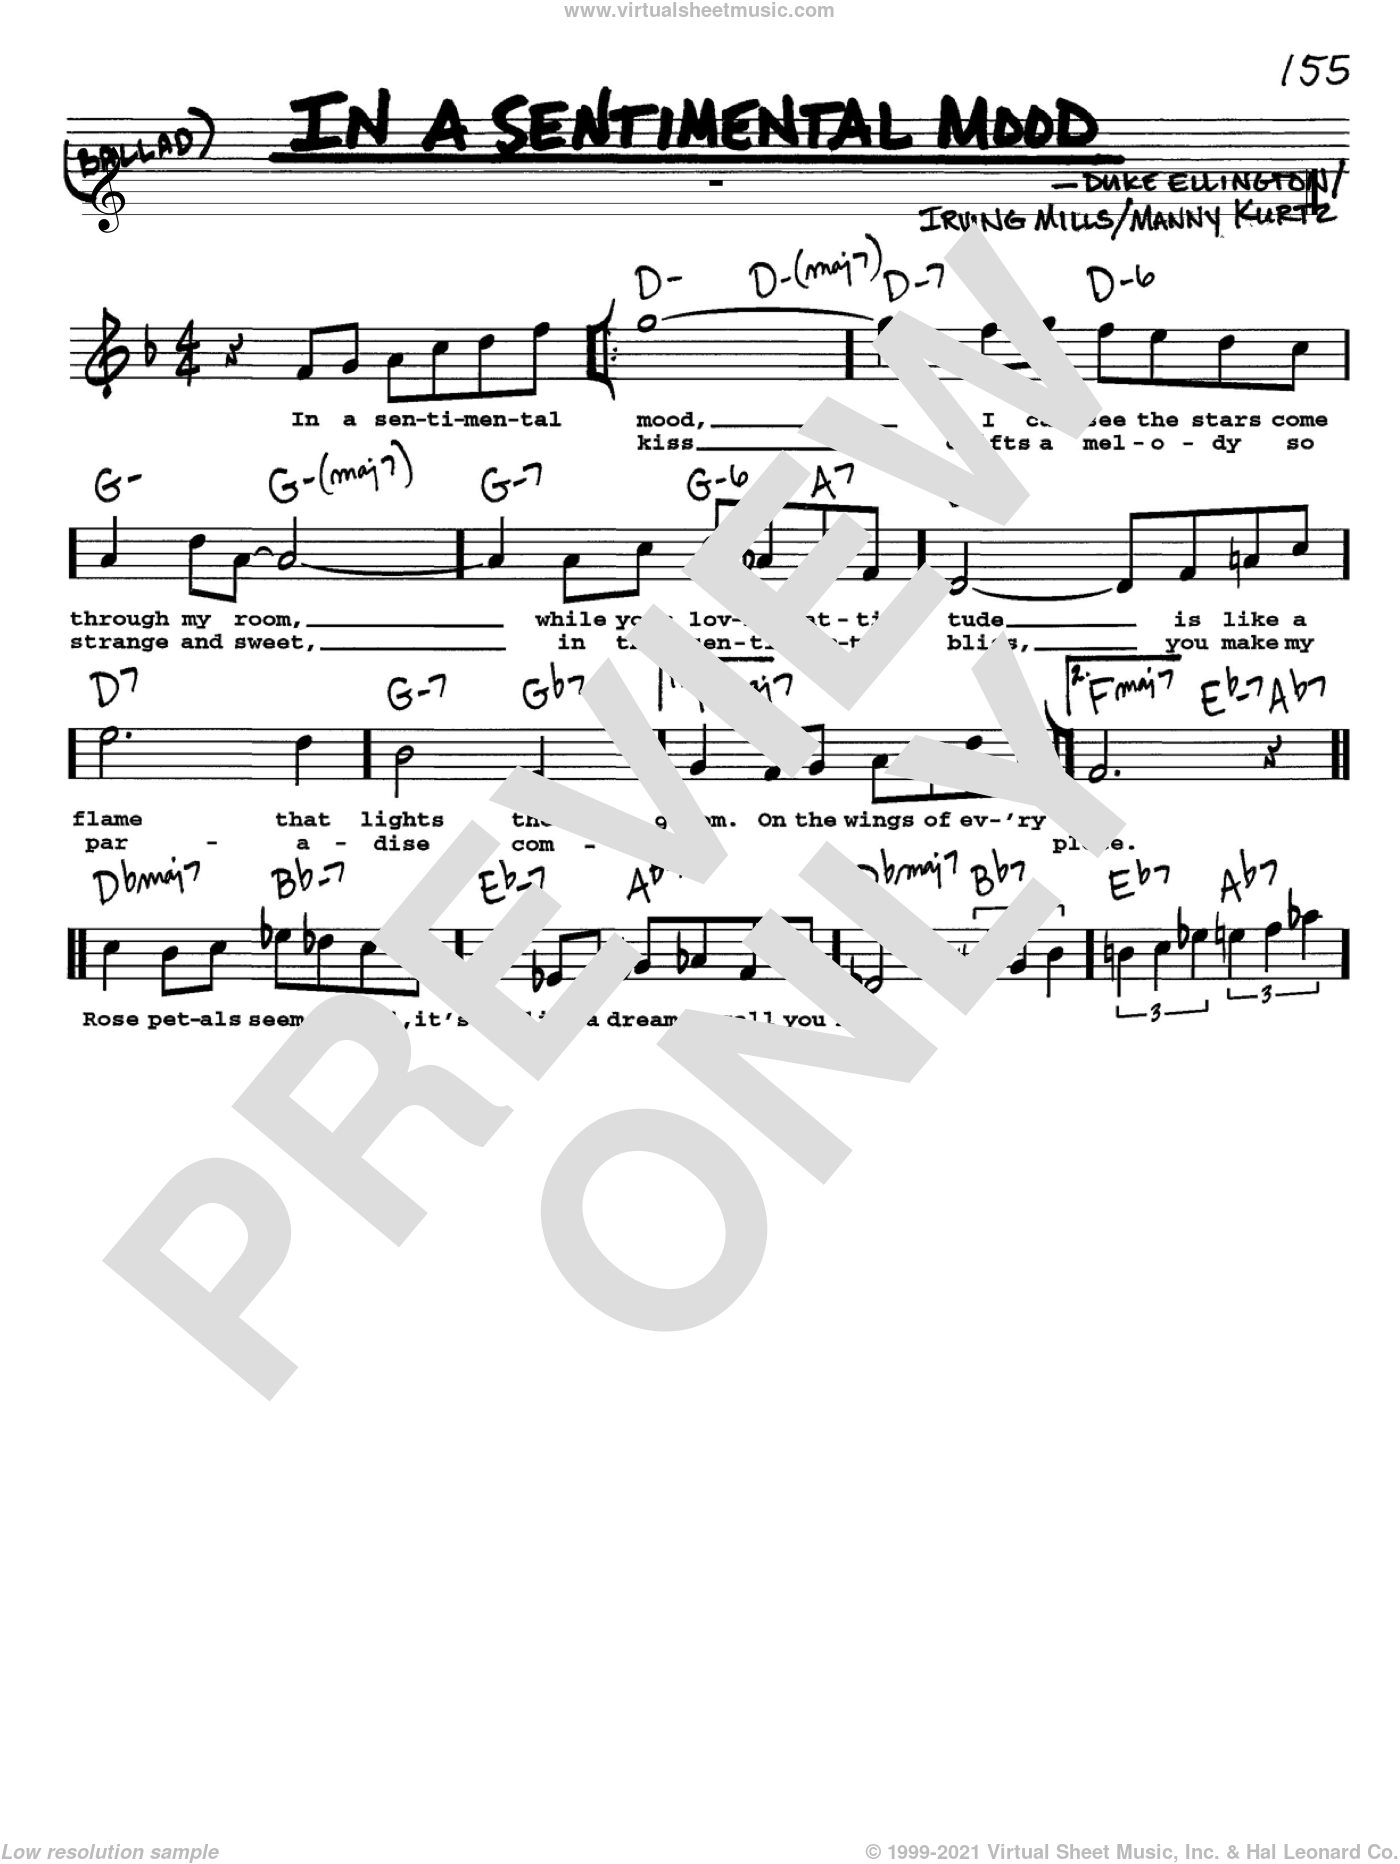 In A Sentimental Mood sheet music for voice and other instruments (Vocal Volume 1) by Manny Kurtz, Duke Ellington and Irving Mills. Score Image Preview.